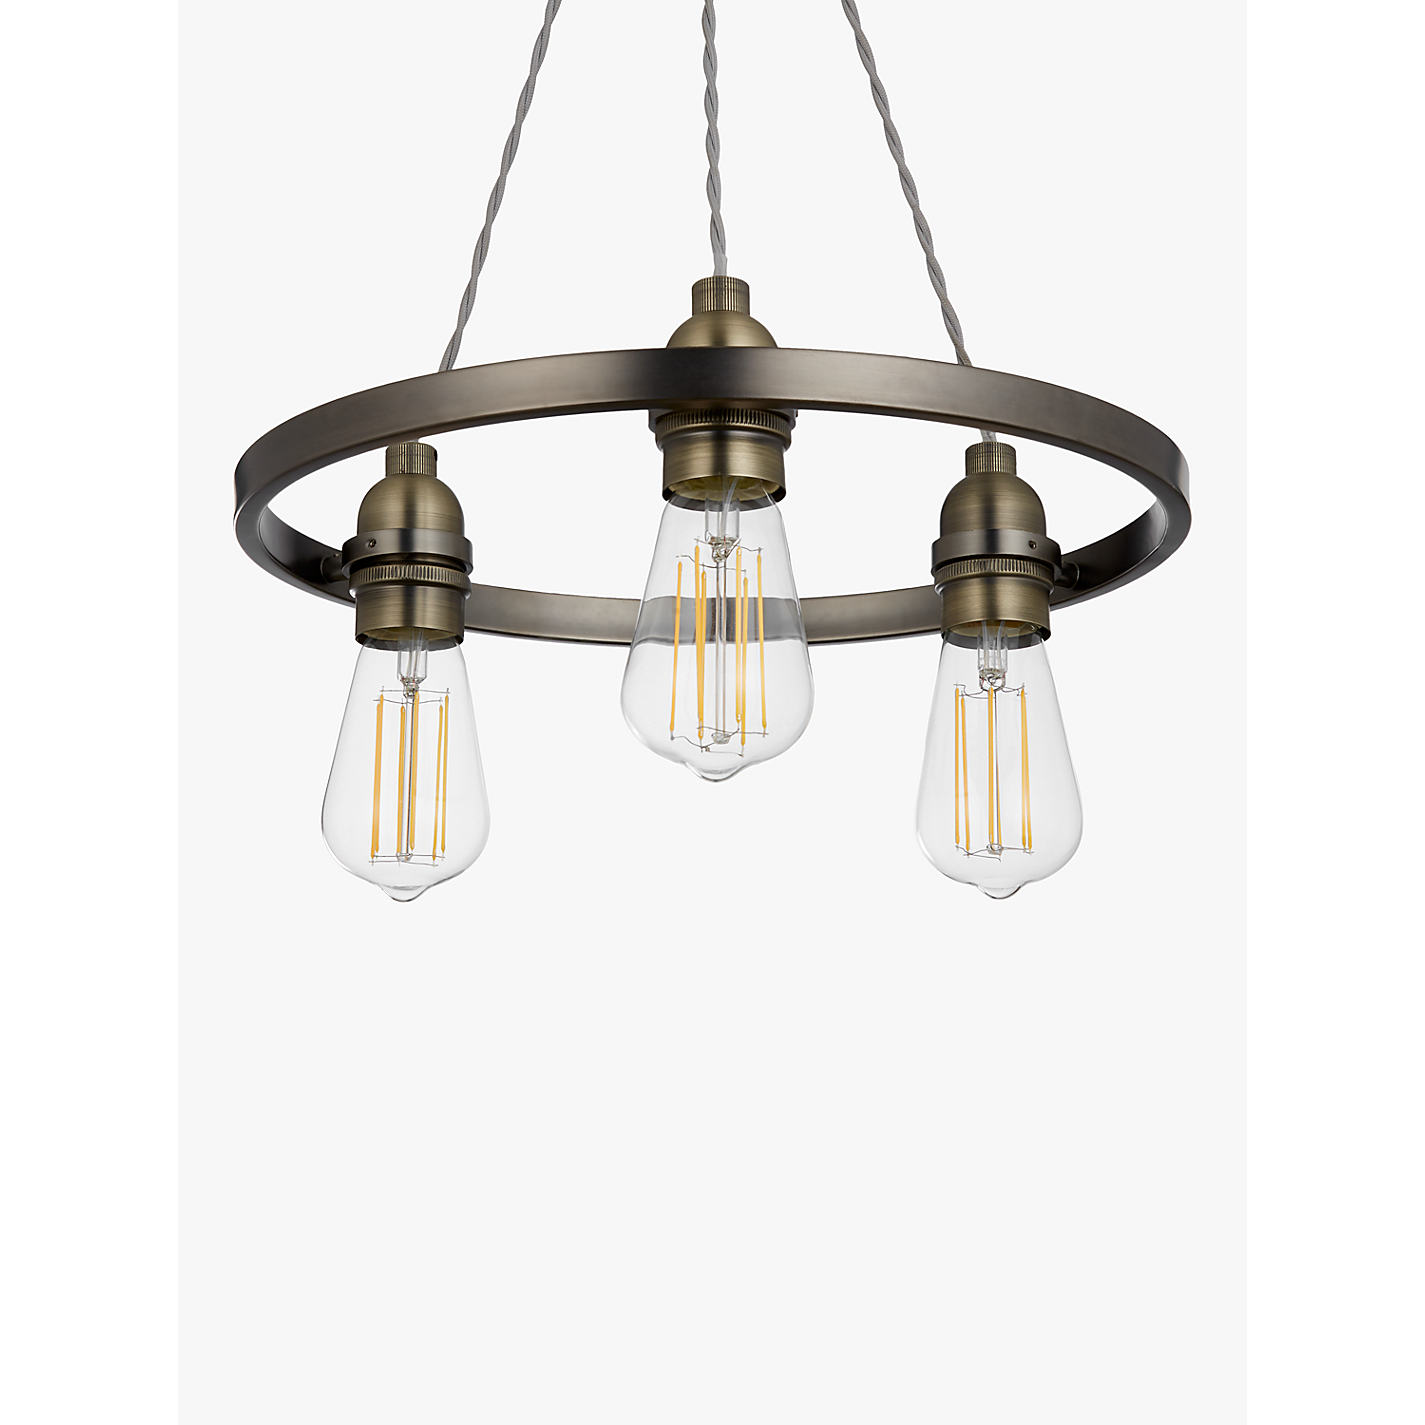 Buy john lewis bistro hoop pendant ceiling light 3 light pewter buy john lewis bistro hoop pendant ceiling light 3 light pewter online at johnlewis aloadofball Gallery